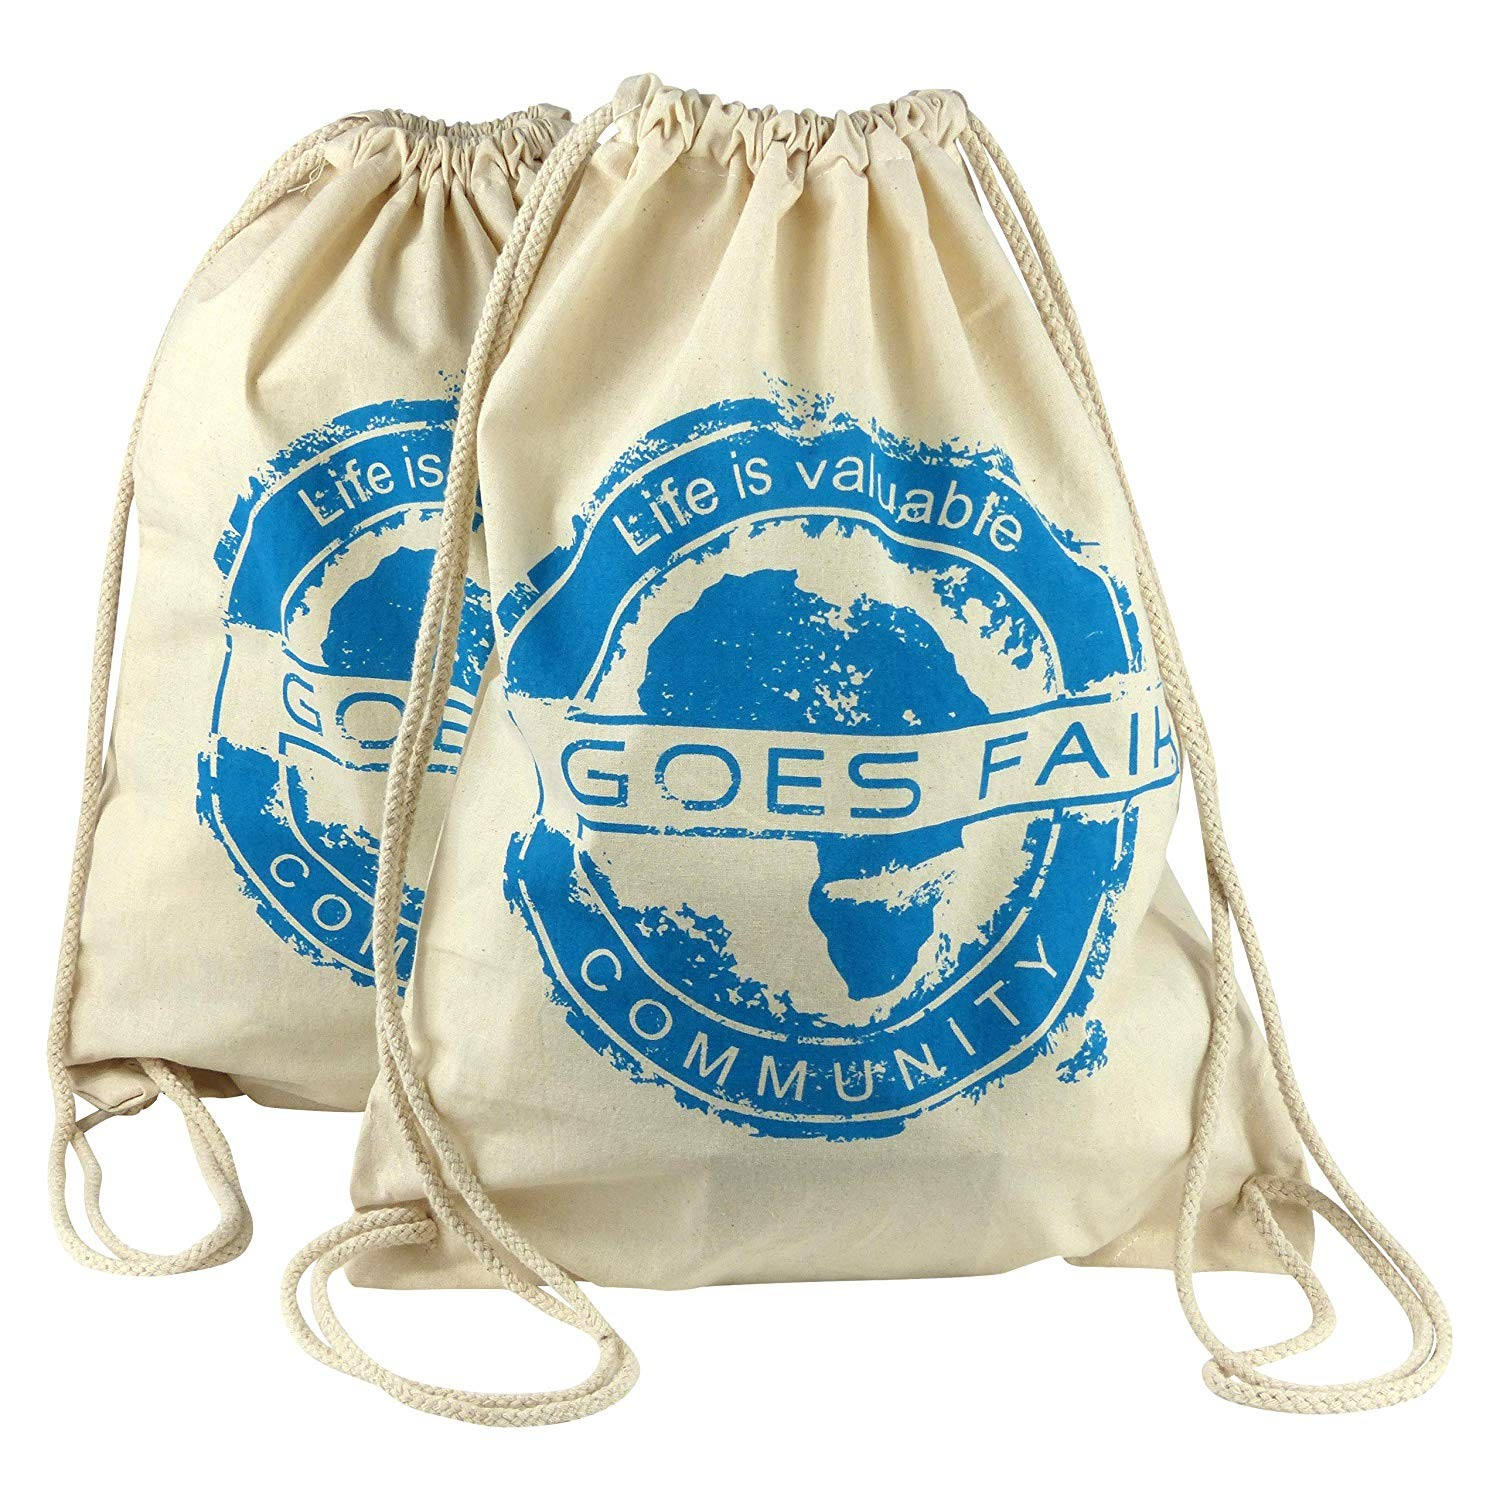 GOES FAIR® Gymbag türkis - 2er-Set